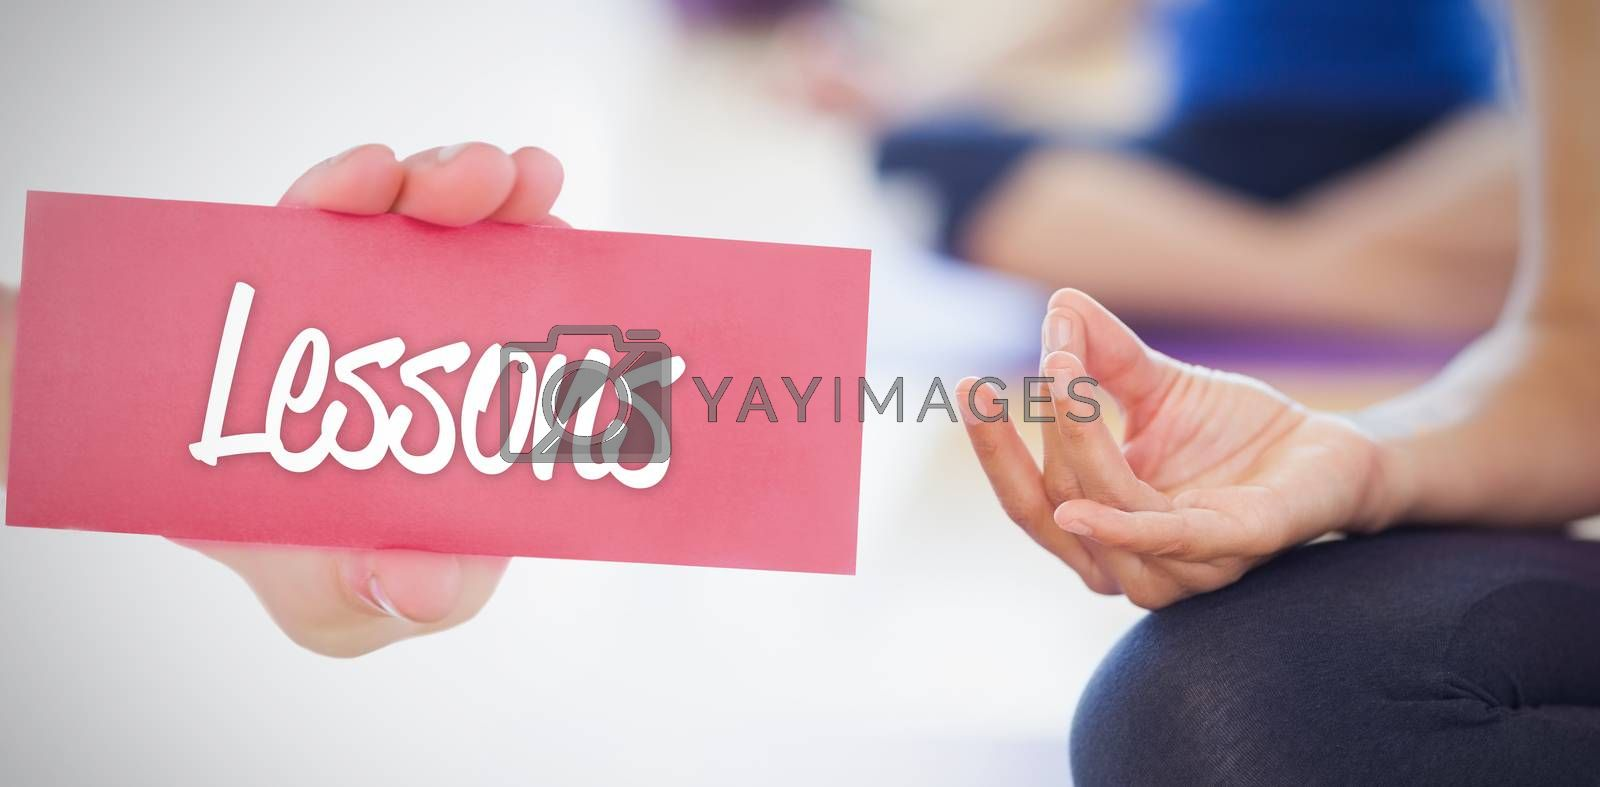 The word lessons and hand showing card against